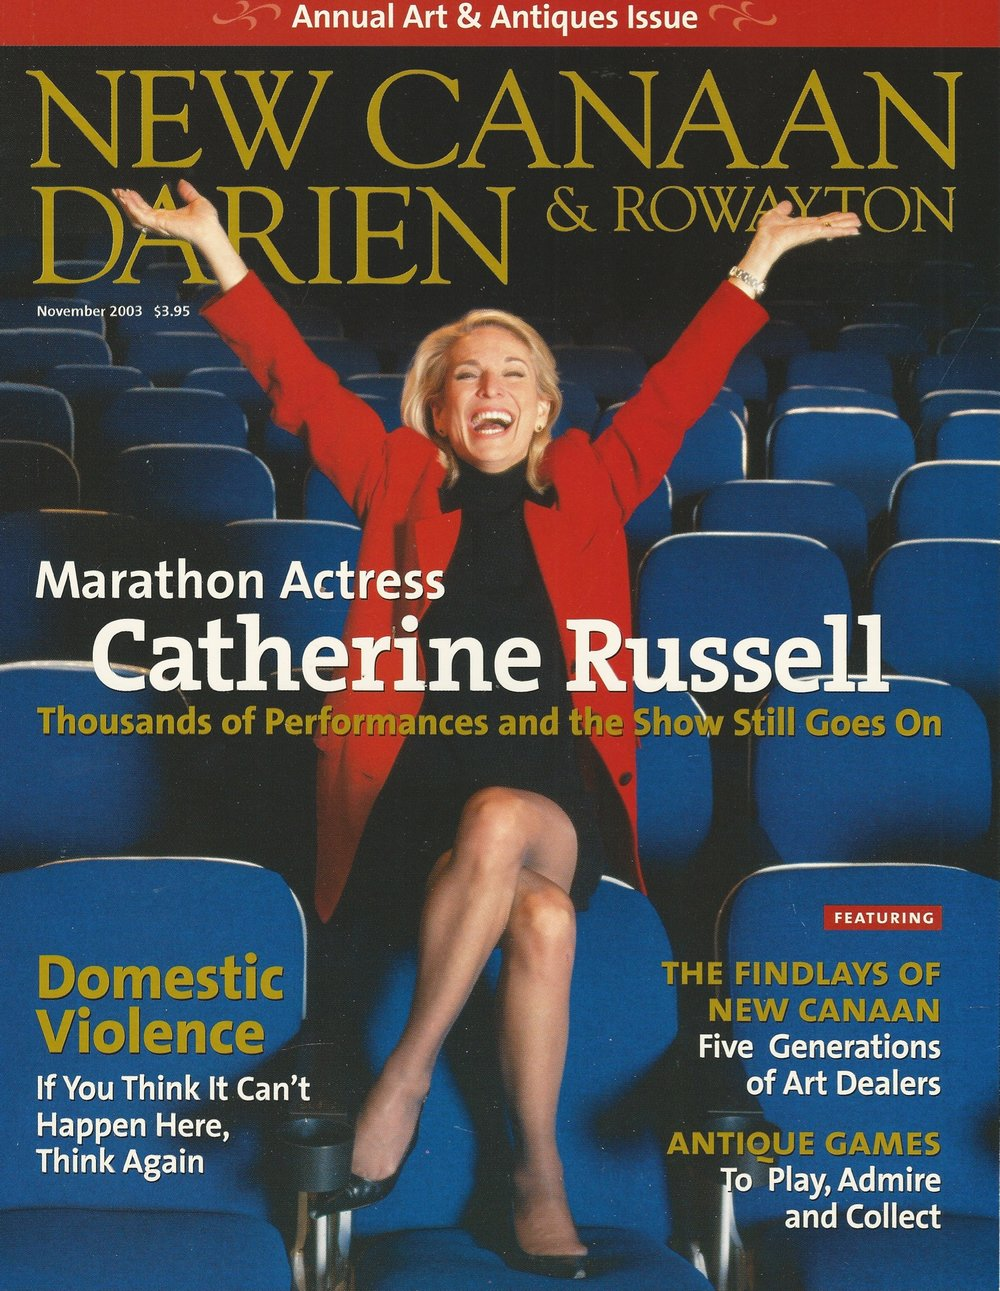 NCDR cover.jpg